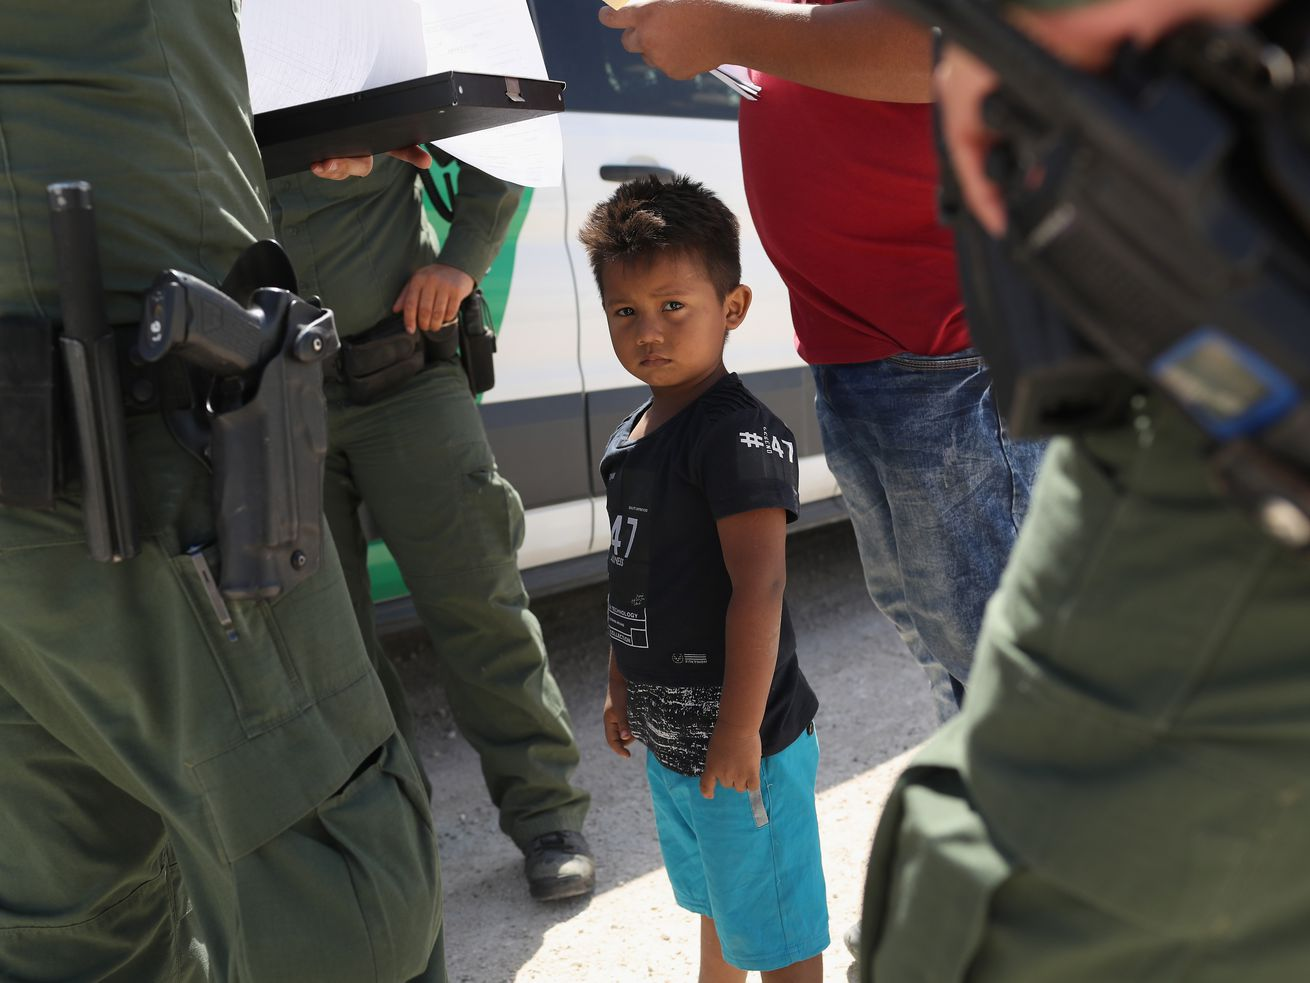 973124256.jpg.0 Why Border Patrol agents obey immoral orders